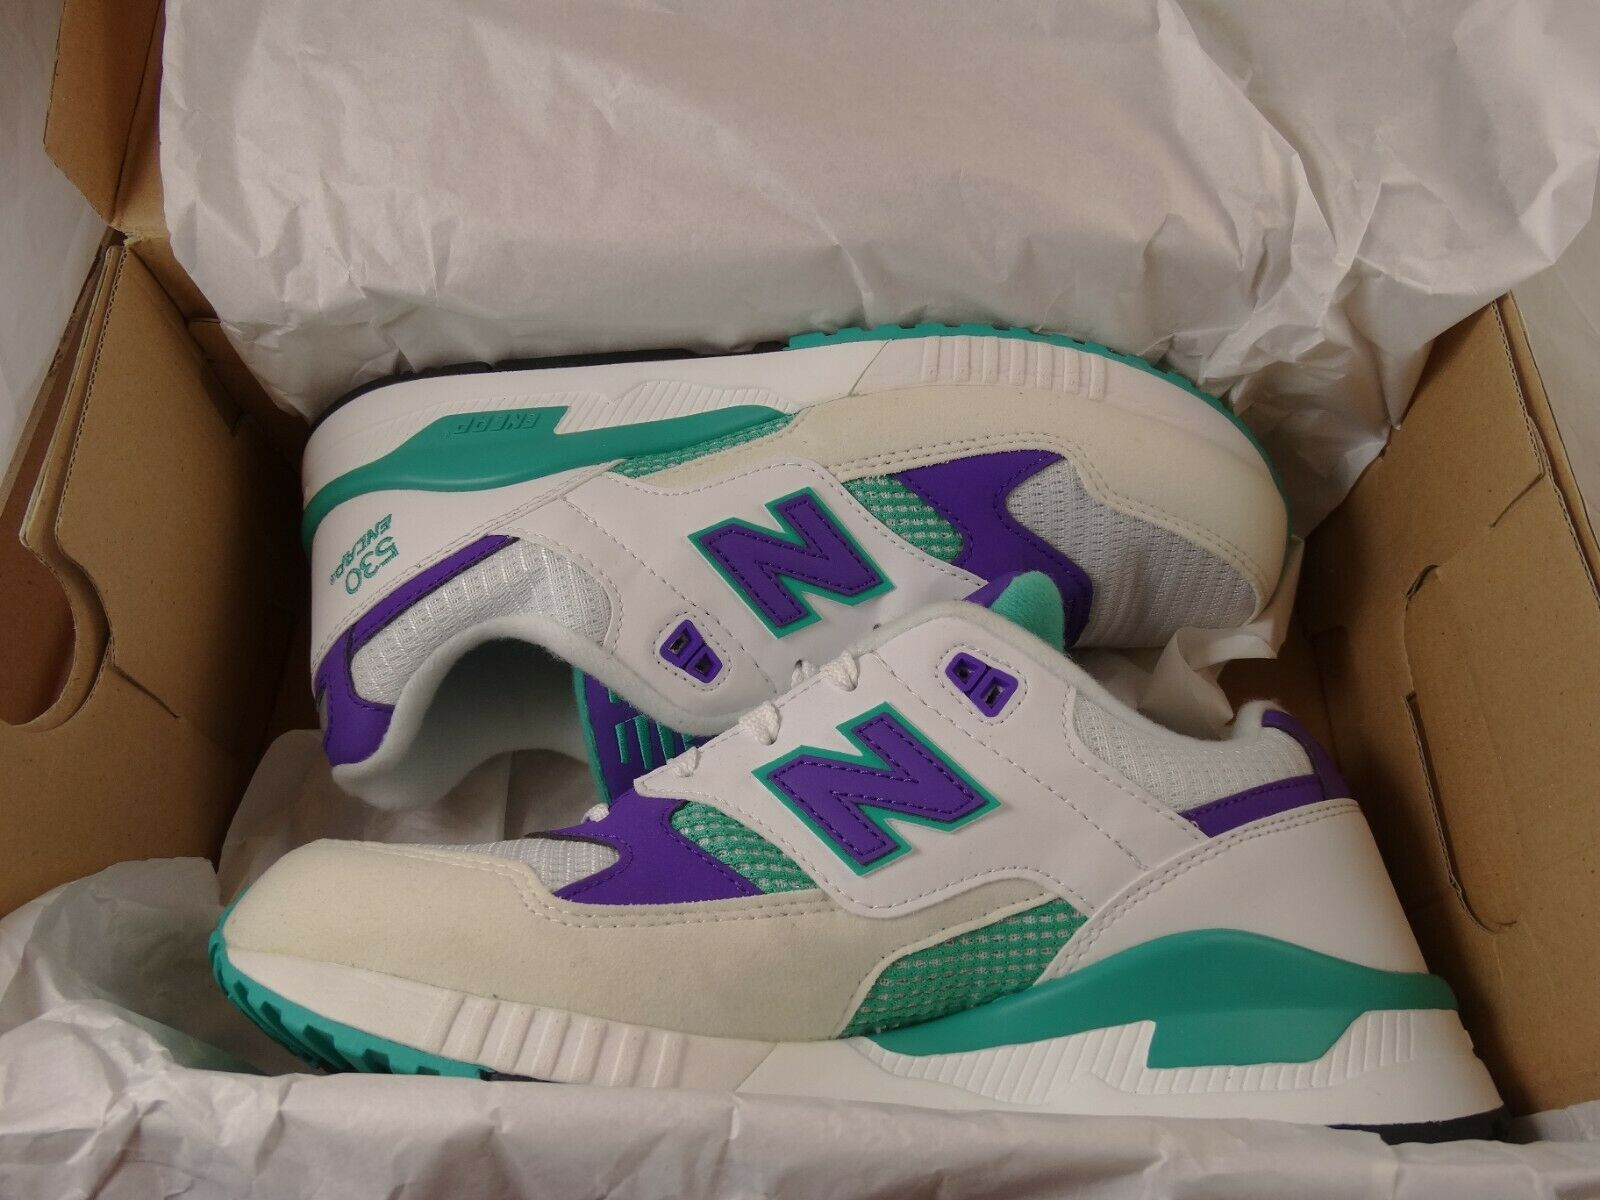 New Balance M530 Size 8 Purple and Teal Mens lifestyle shoes